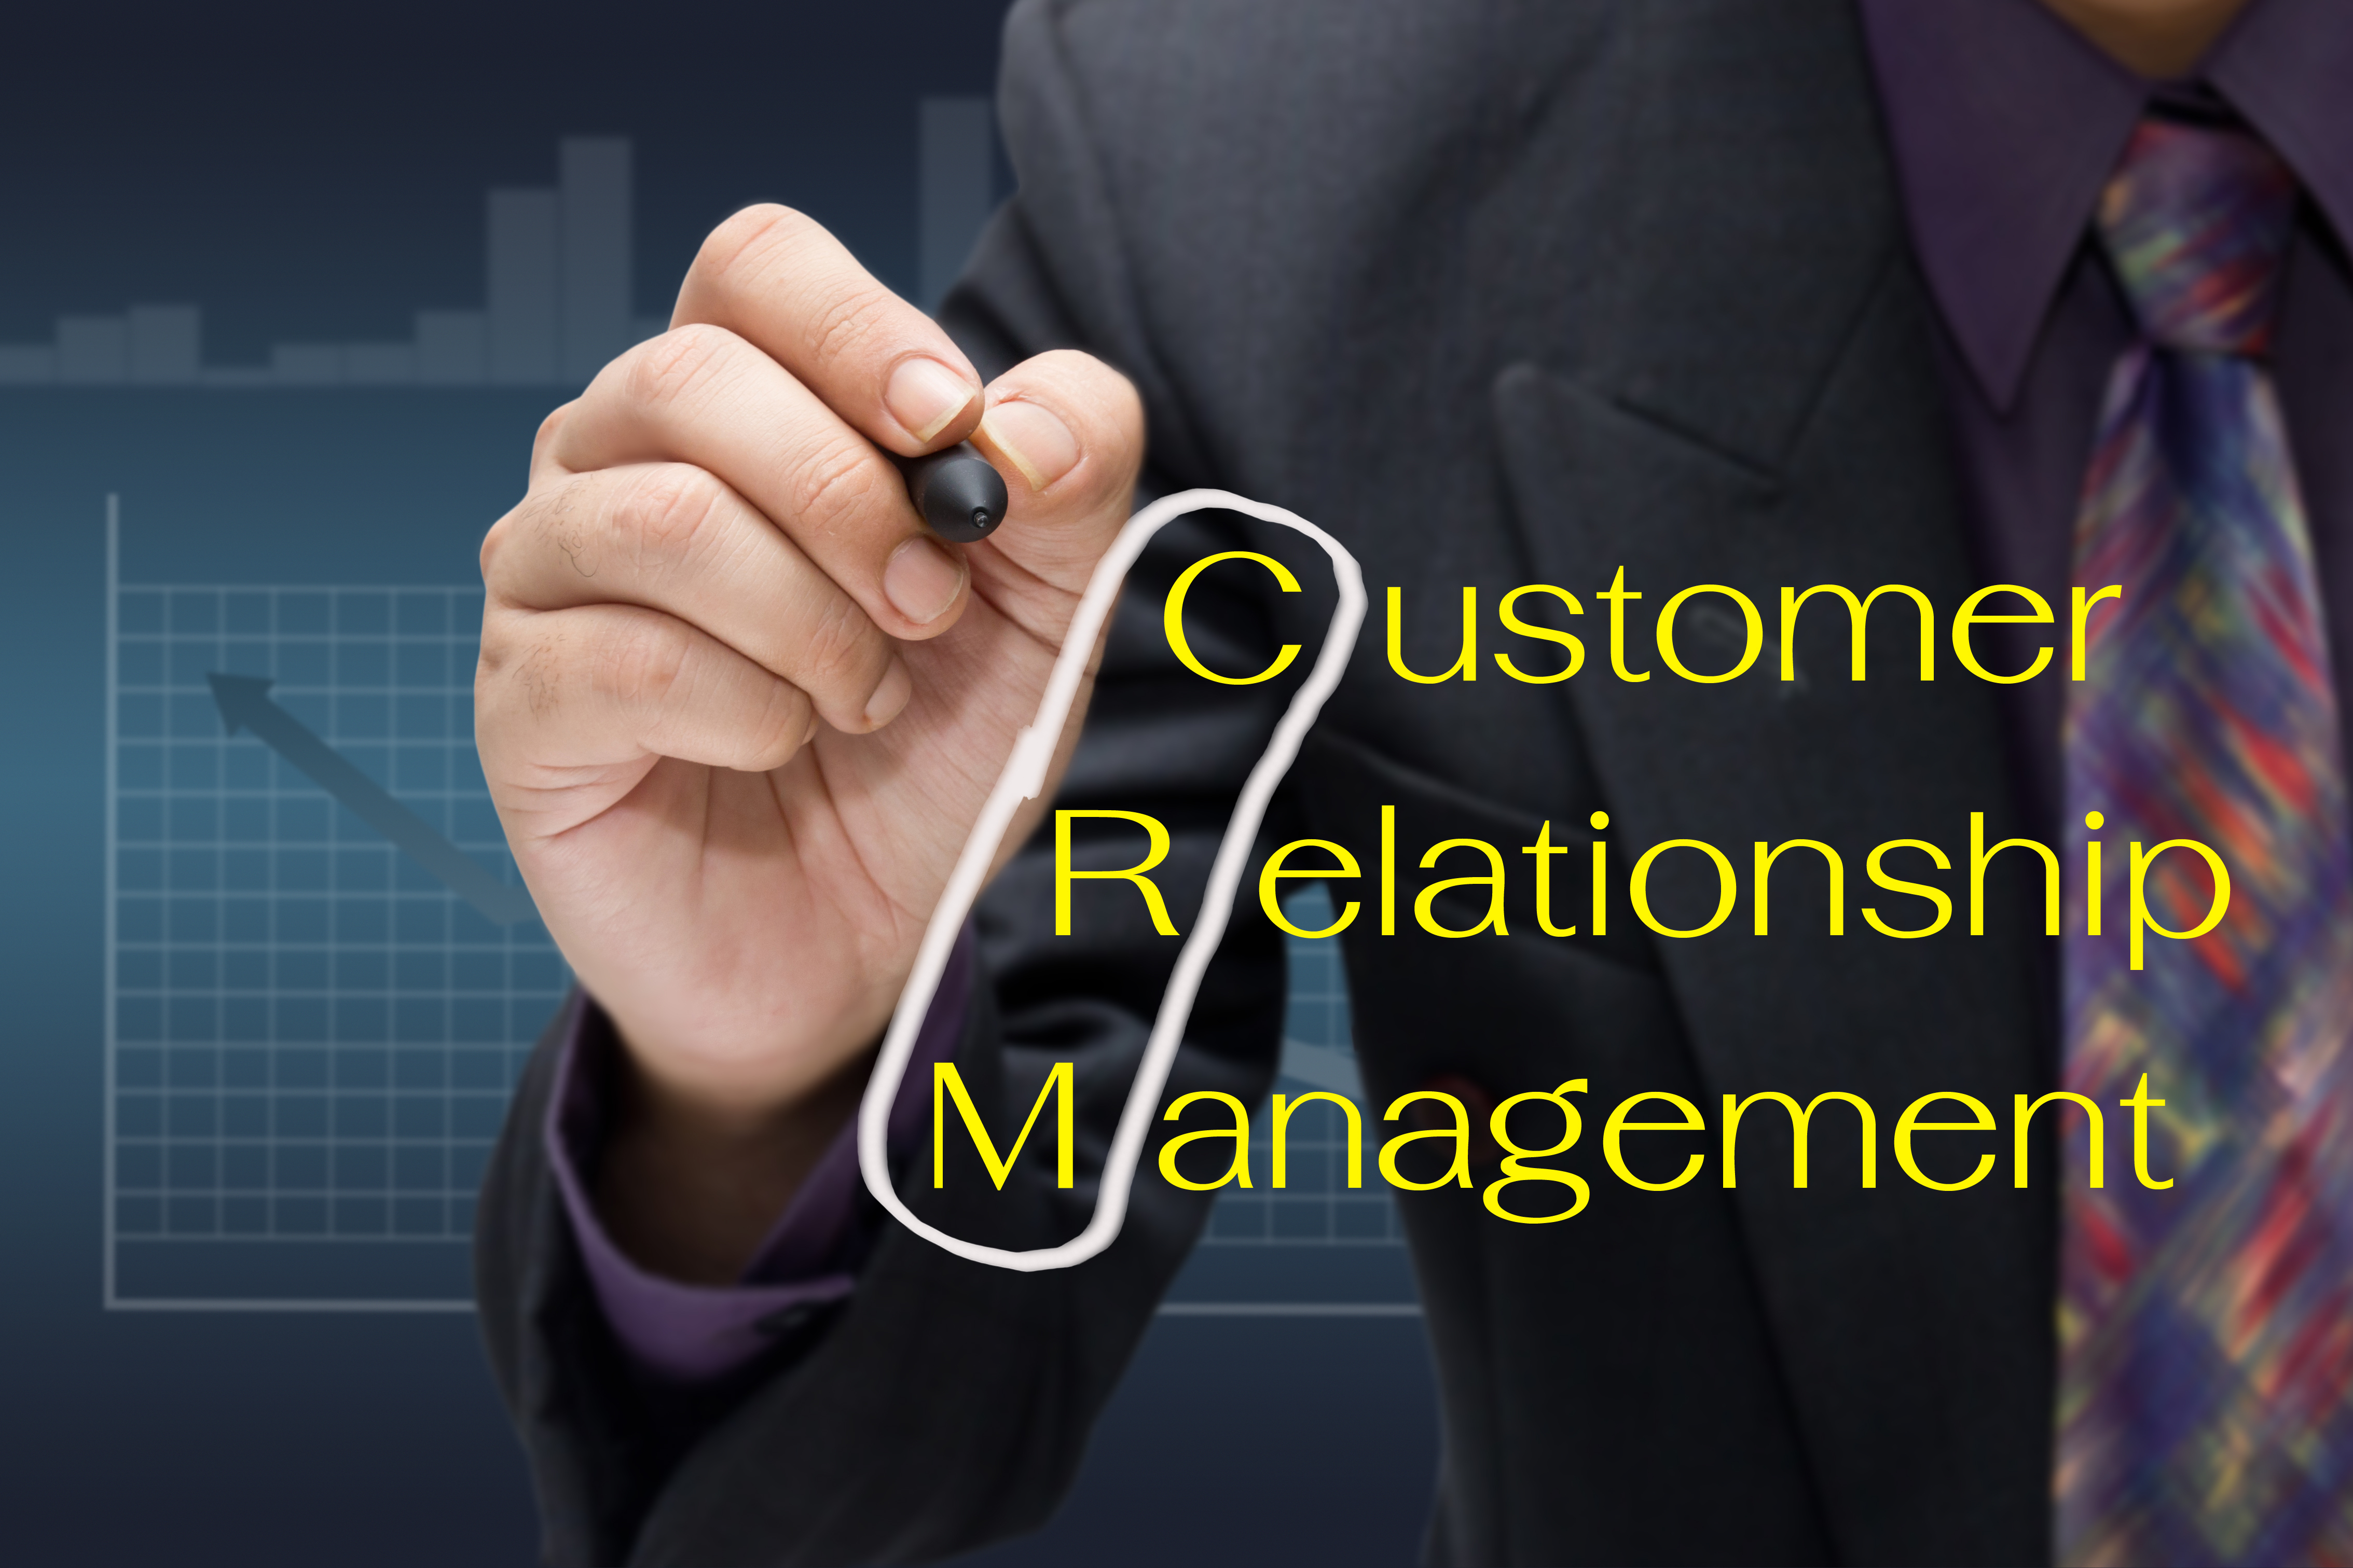 customer relation Country telephone and fax email address italy: tel 06 65640 : albania : customerrelationsal@alitaliait : algeria: fax +213 21721115: customerrelationsdz@alitaliait.